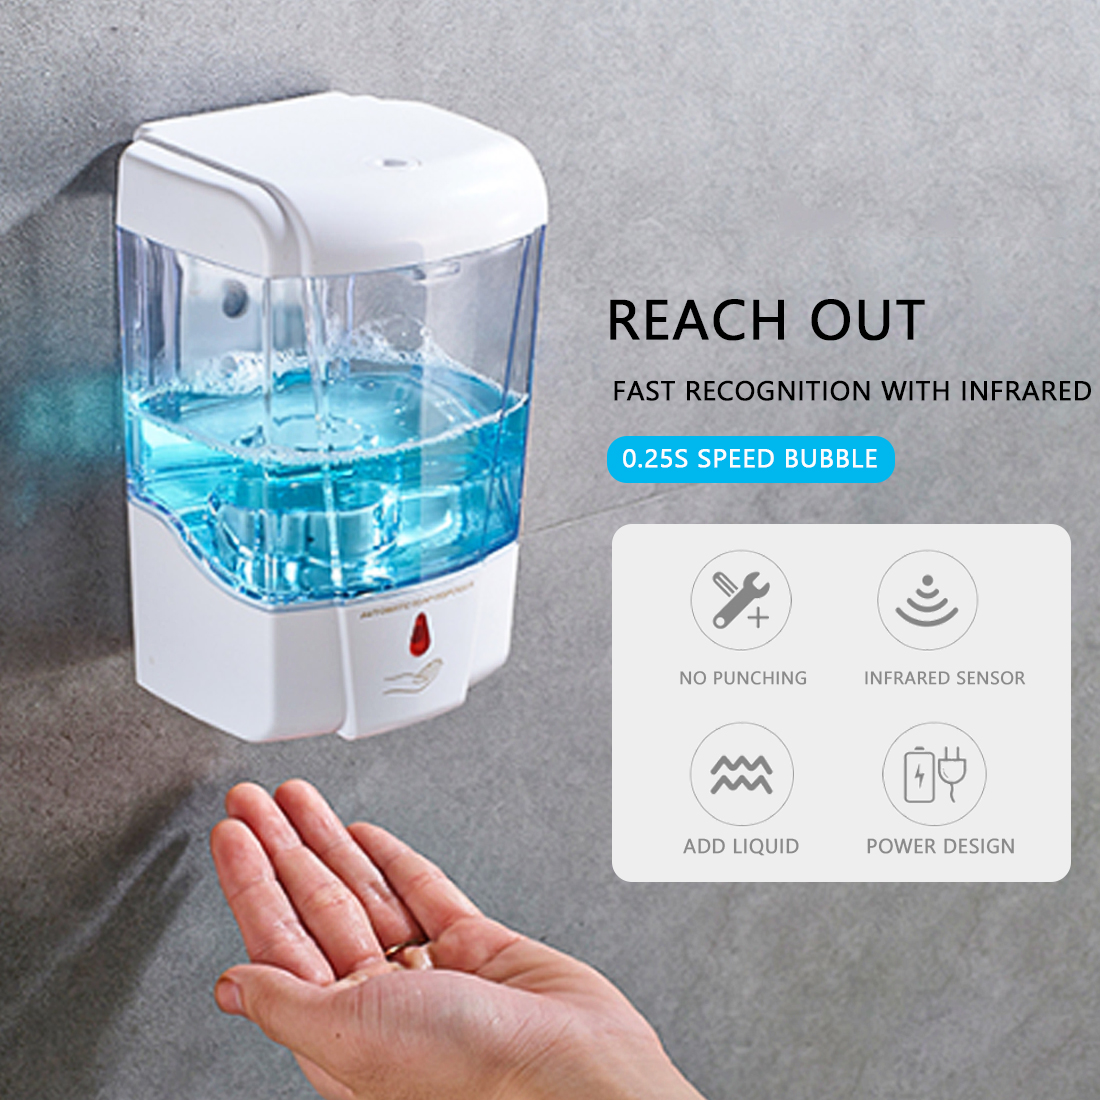 700ml Automatic Sensor Foam Soap Dispenser  Wall-Mount Soap Dispenser Touchless Soap Dispenser Battery Powered Kitchen Bathroom